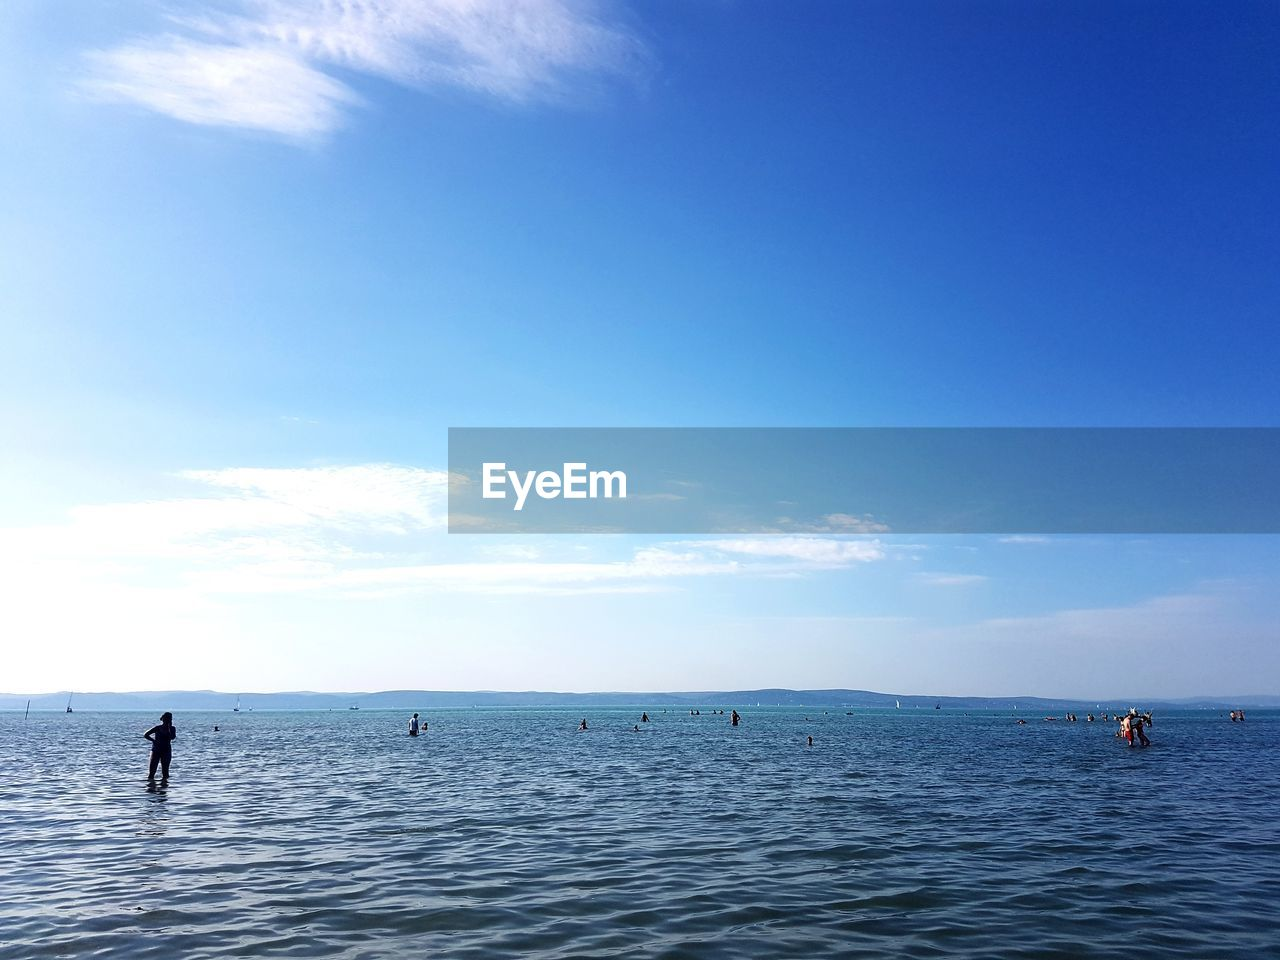 water, sea, sky, beauty in nature, horizon over water, real people, horizon, scenics - nature, waterfront, day, blue, leisure activity, tranquility, lifestyles, nature, tranquil scene, vacations, cloud - sky, trip, outdoors